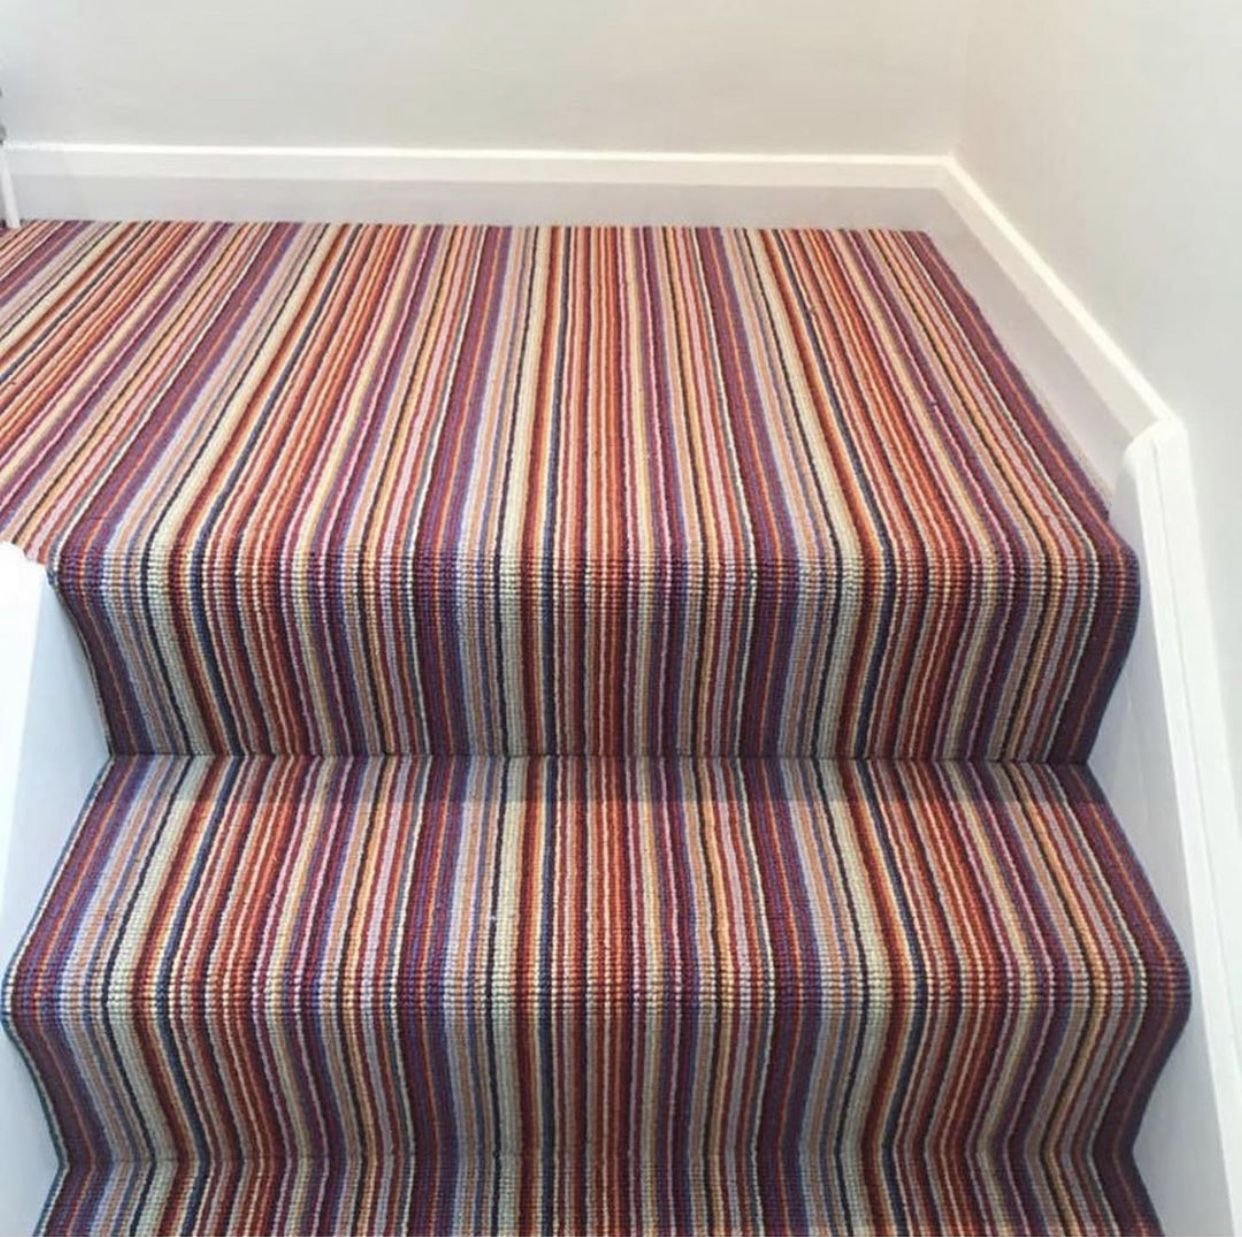 Best This Striped Carpet Is Our Deco Loop Carpet And Looks 400 x 300